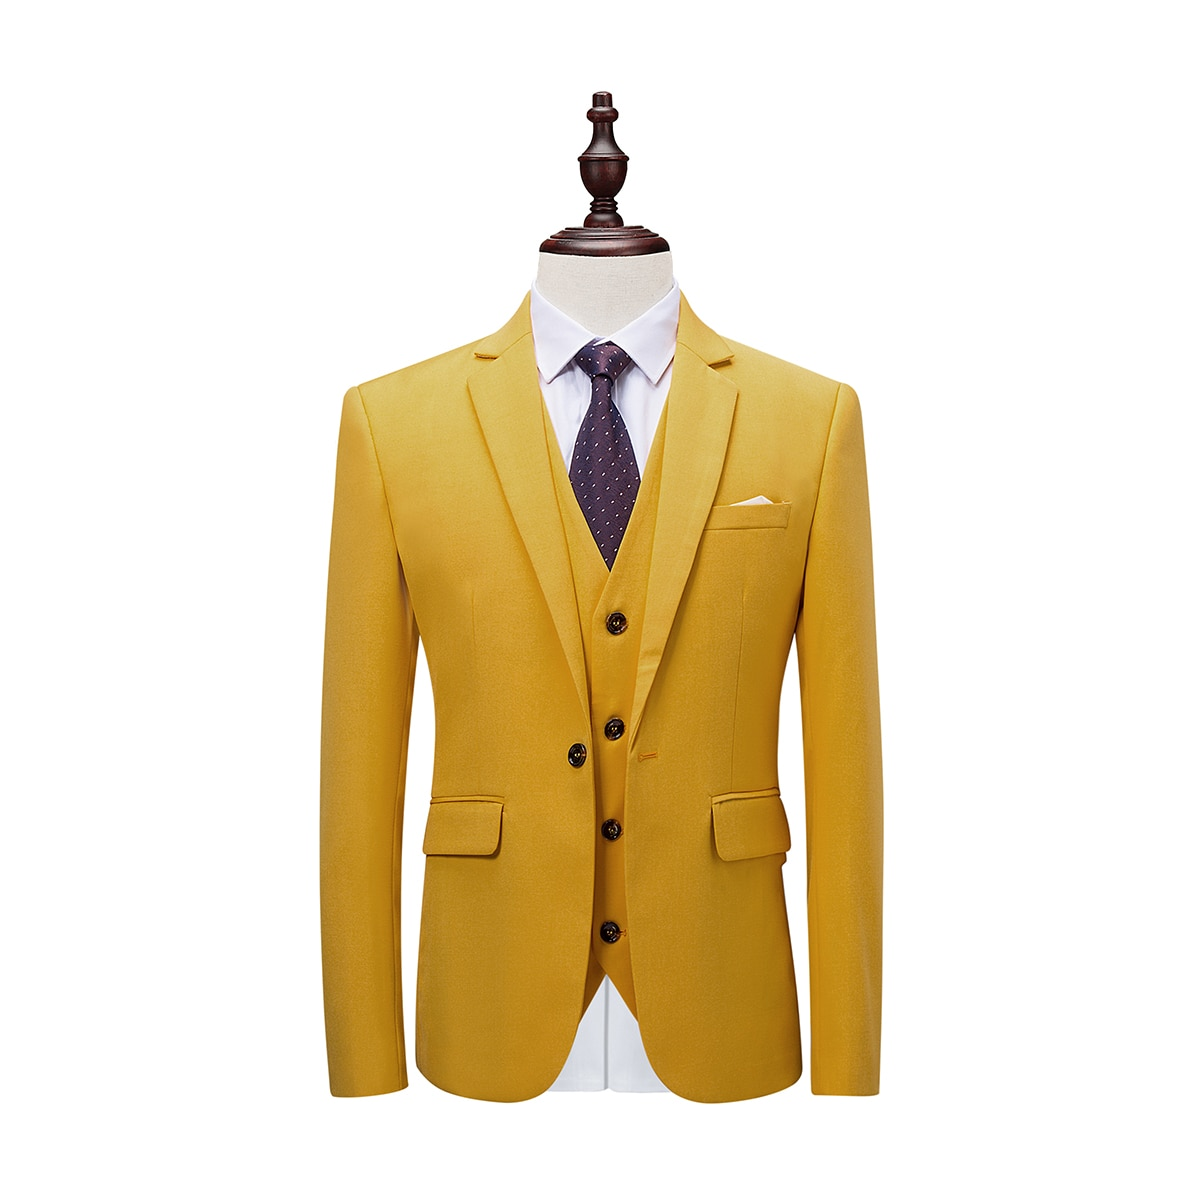 New MenS Solid Color Fashion Trend Suit Three-Piece Bright Yellow Business Banquet Wedding Dress High-Grade Slim